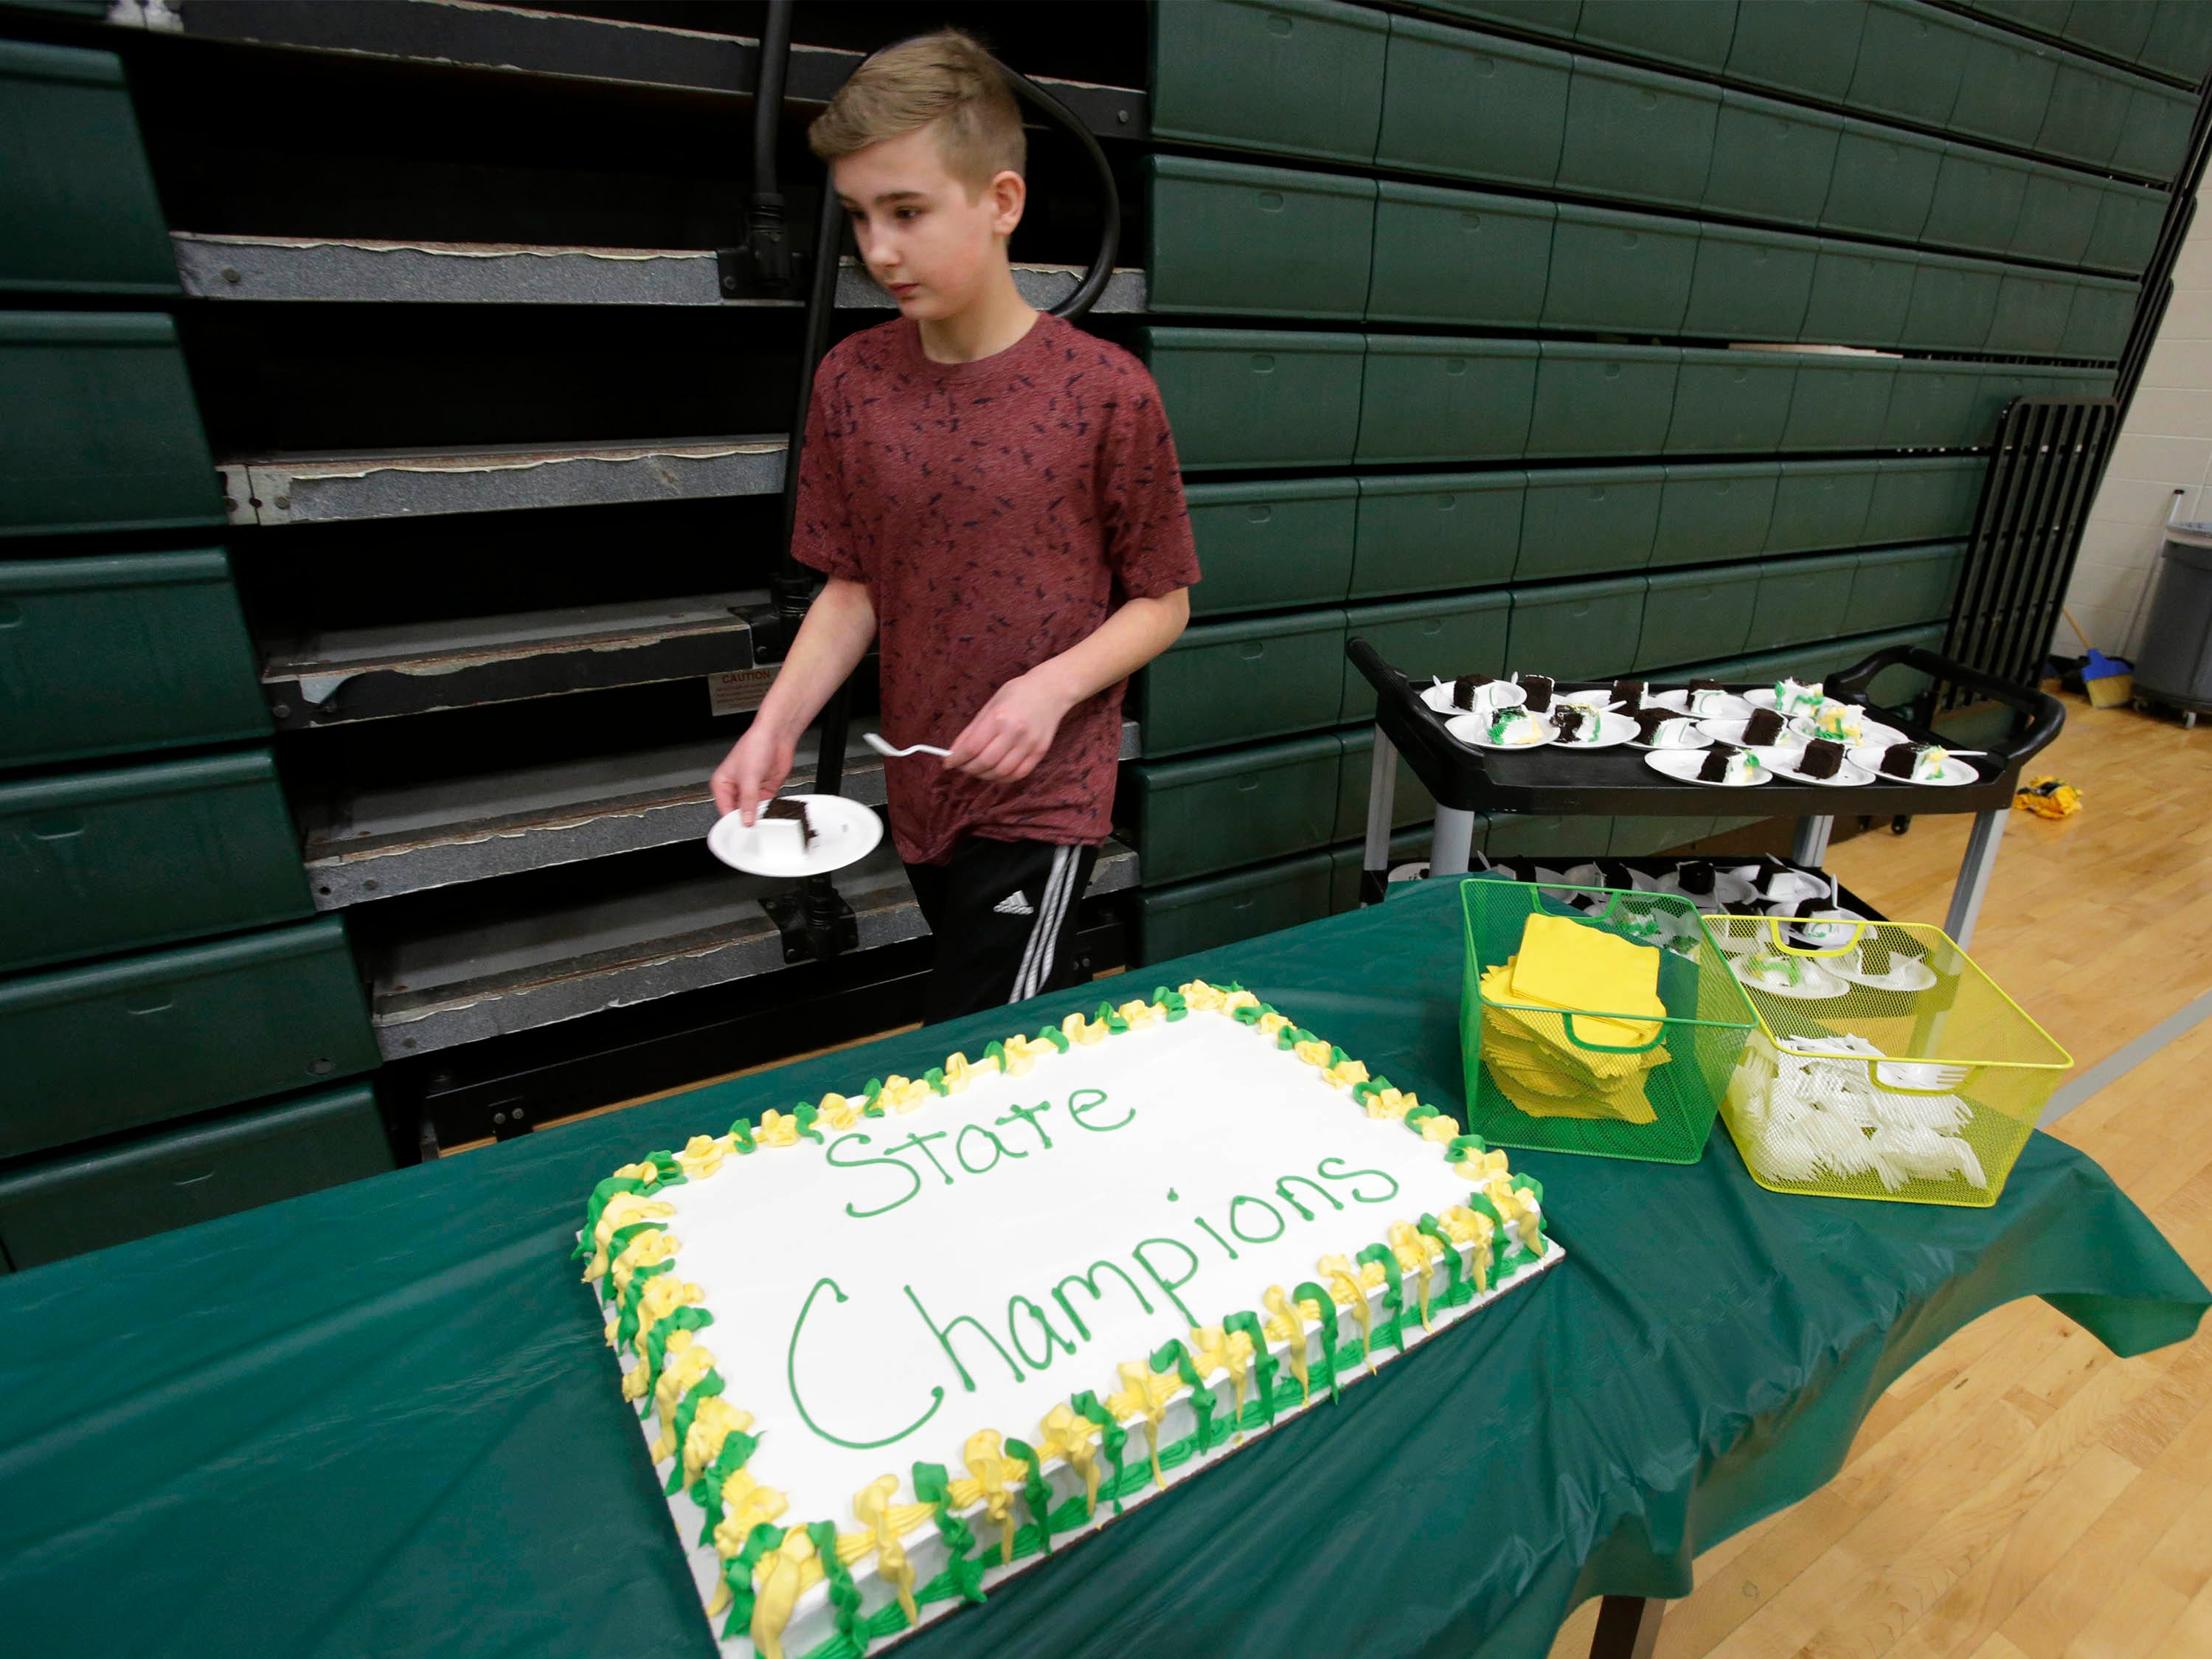 Cake was served following the Sheboygan Lutheran WIAA Div. 5 State Championship rally, Sunday, March 17, 2019, in Sheboygan, Wis.